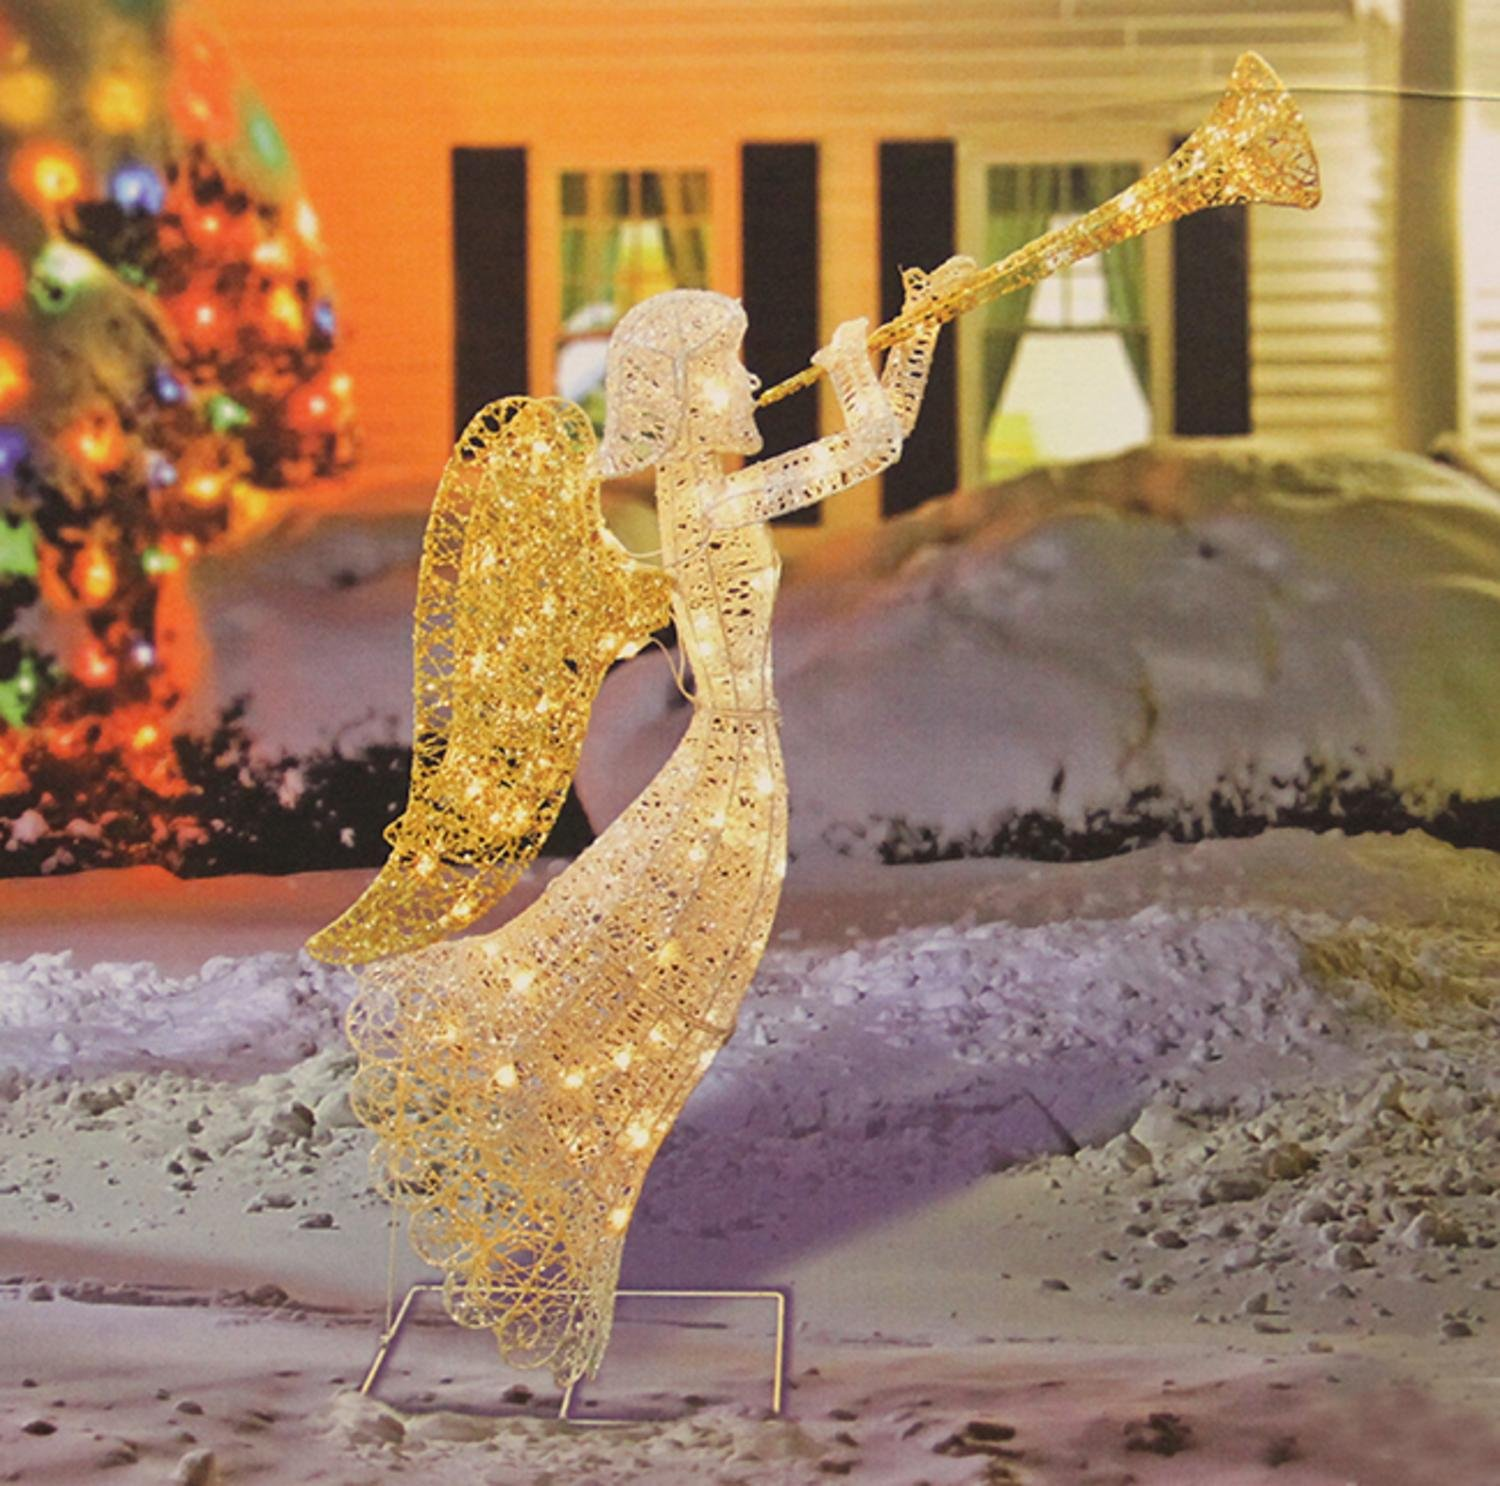 amazoncom penn 58 397w 066 48 glittered trumpeting angel lighted christmas yard art decoration home kitchen - Lighted Christmas Angel Yard Decor